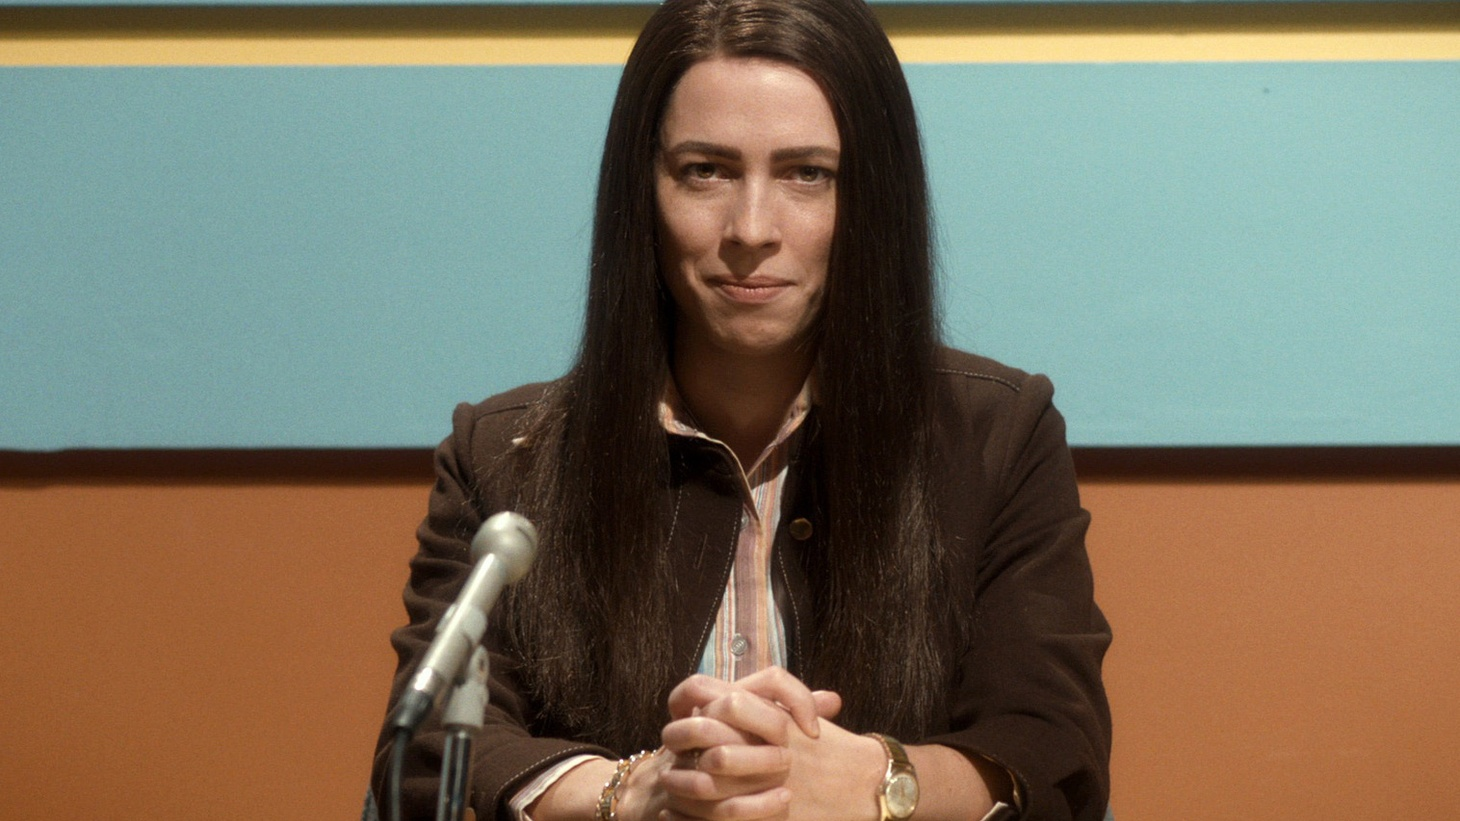 When Rebecca Hall told her agents she wanted to play the title role in a tiny indie film about Christine Chubbuck, a TV news reporter who committed suicide on live television in 1974, her representation said...are you sure? Hall tells us why she took a gamble on the new film 'Christine,' and talks about watching Marvel slash her role in 'Iron Man 3.'